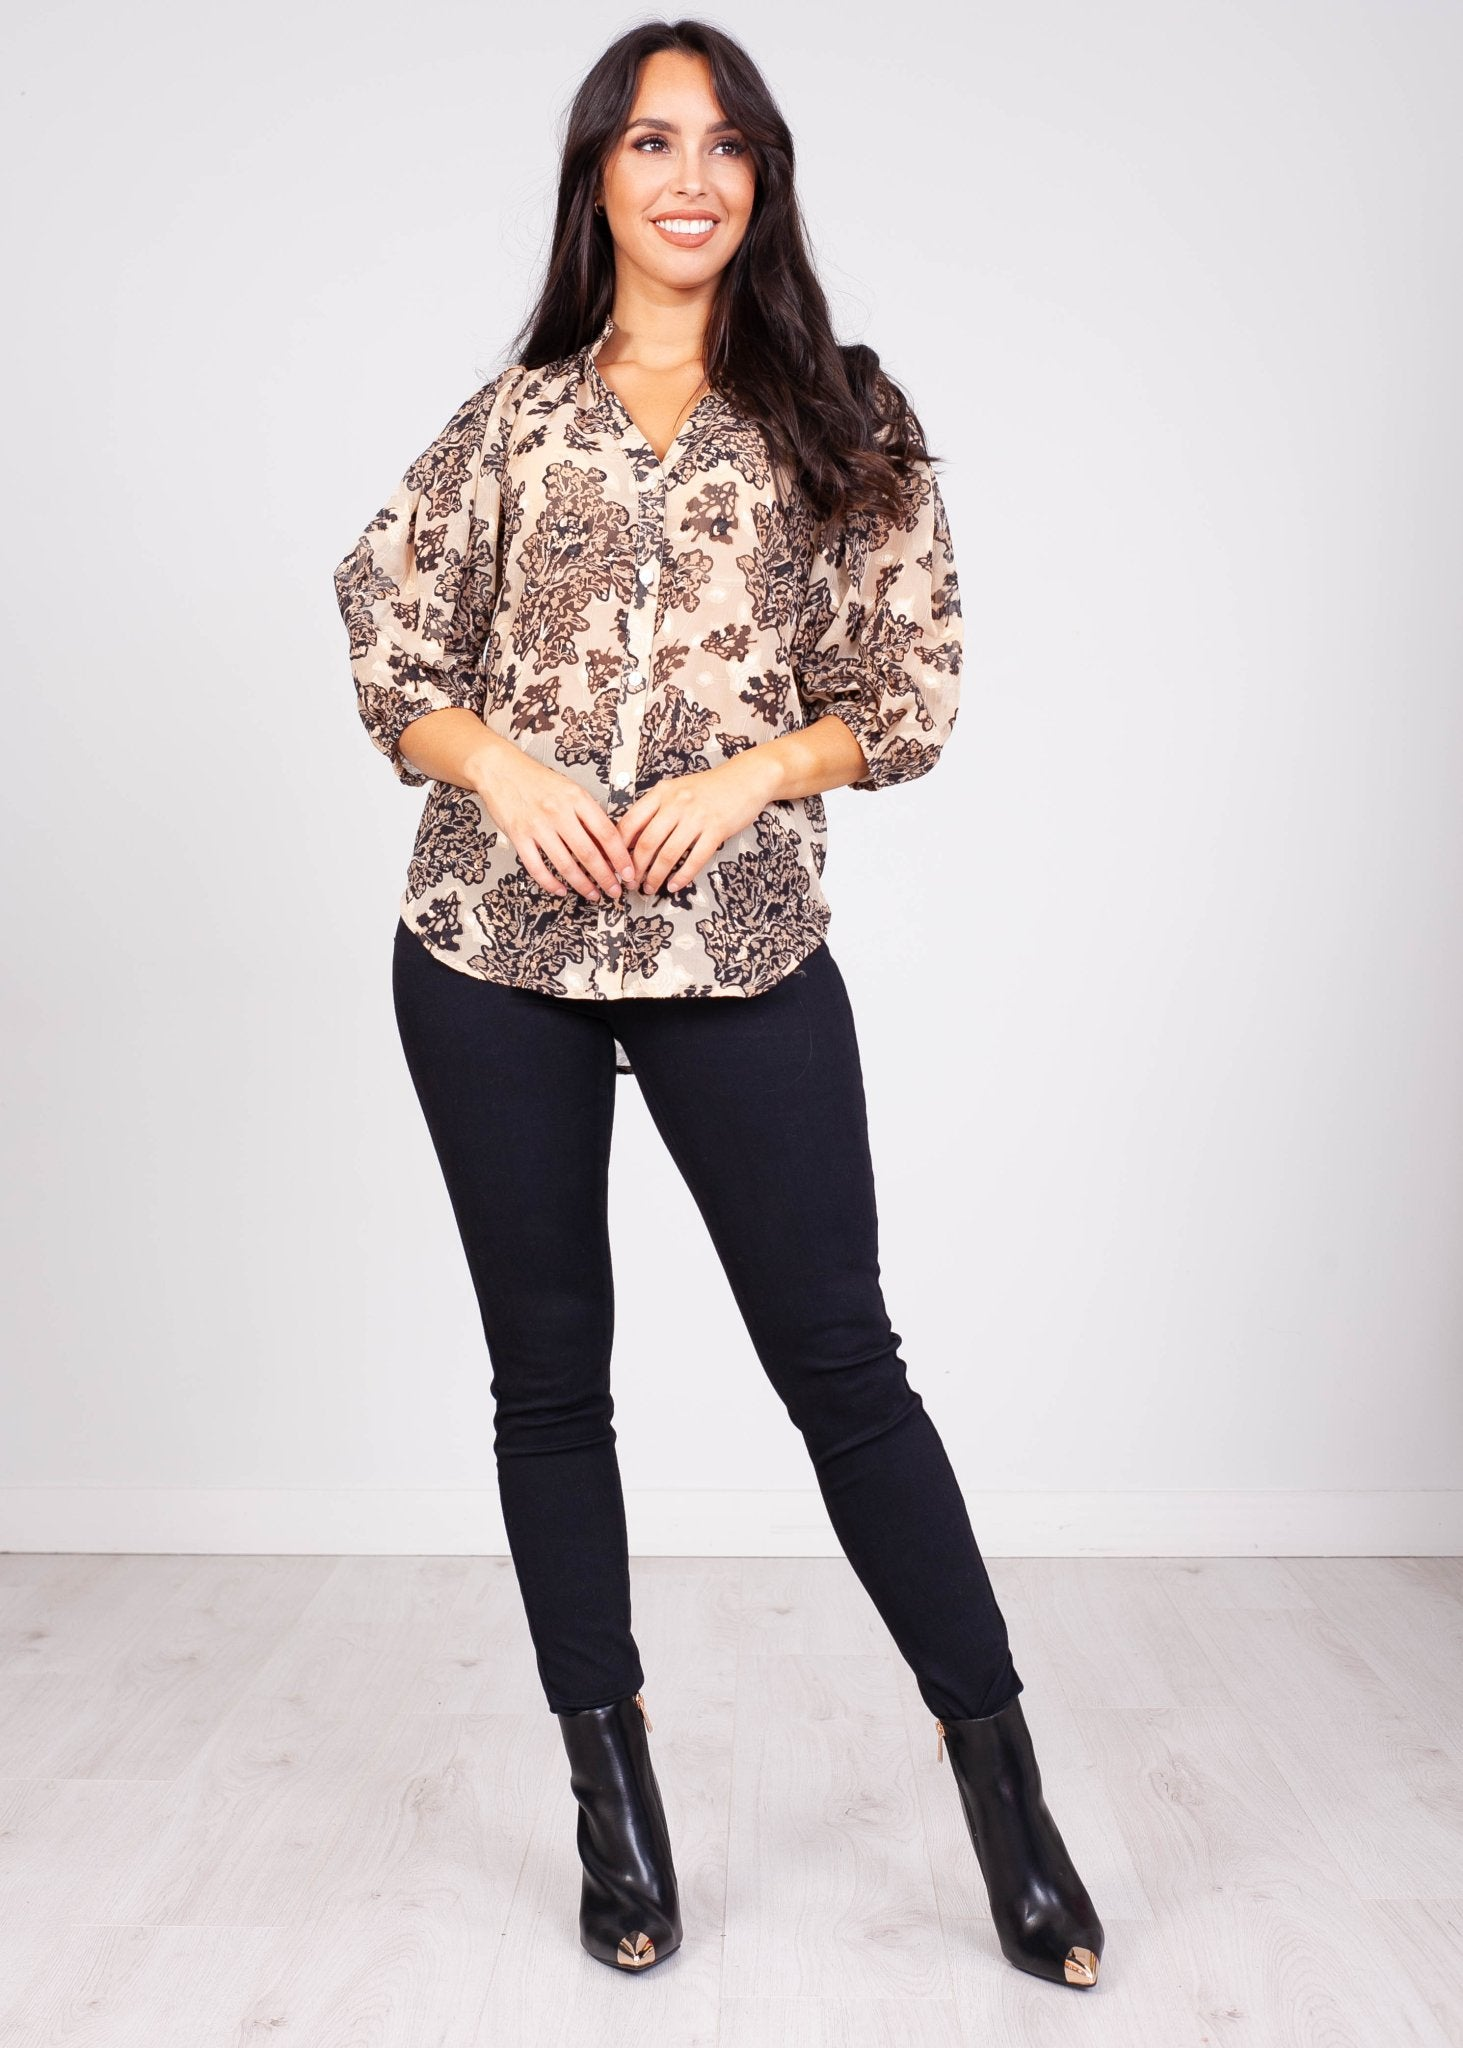 Sissy Bronze Printed Blouse - The Walk in Wardrobe